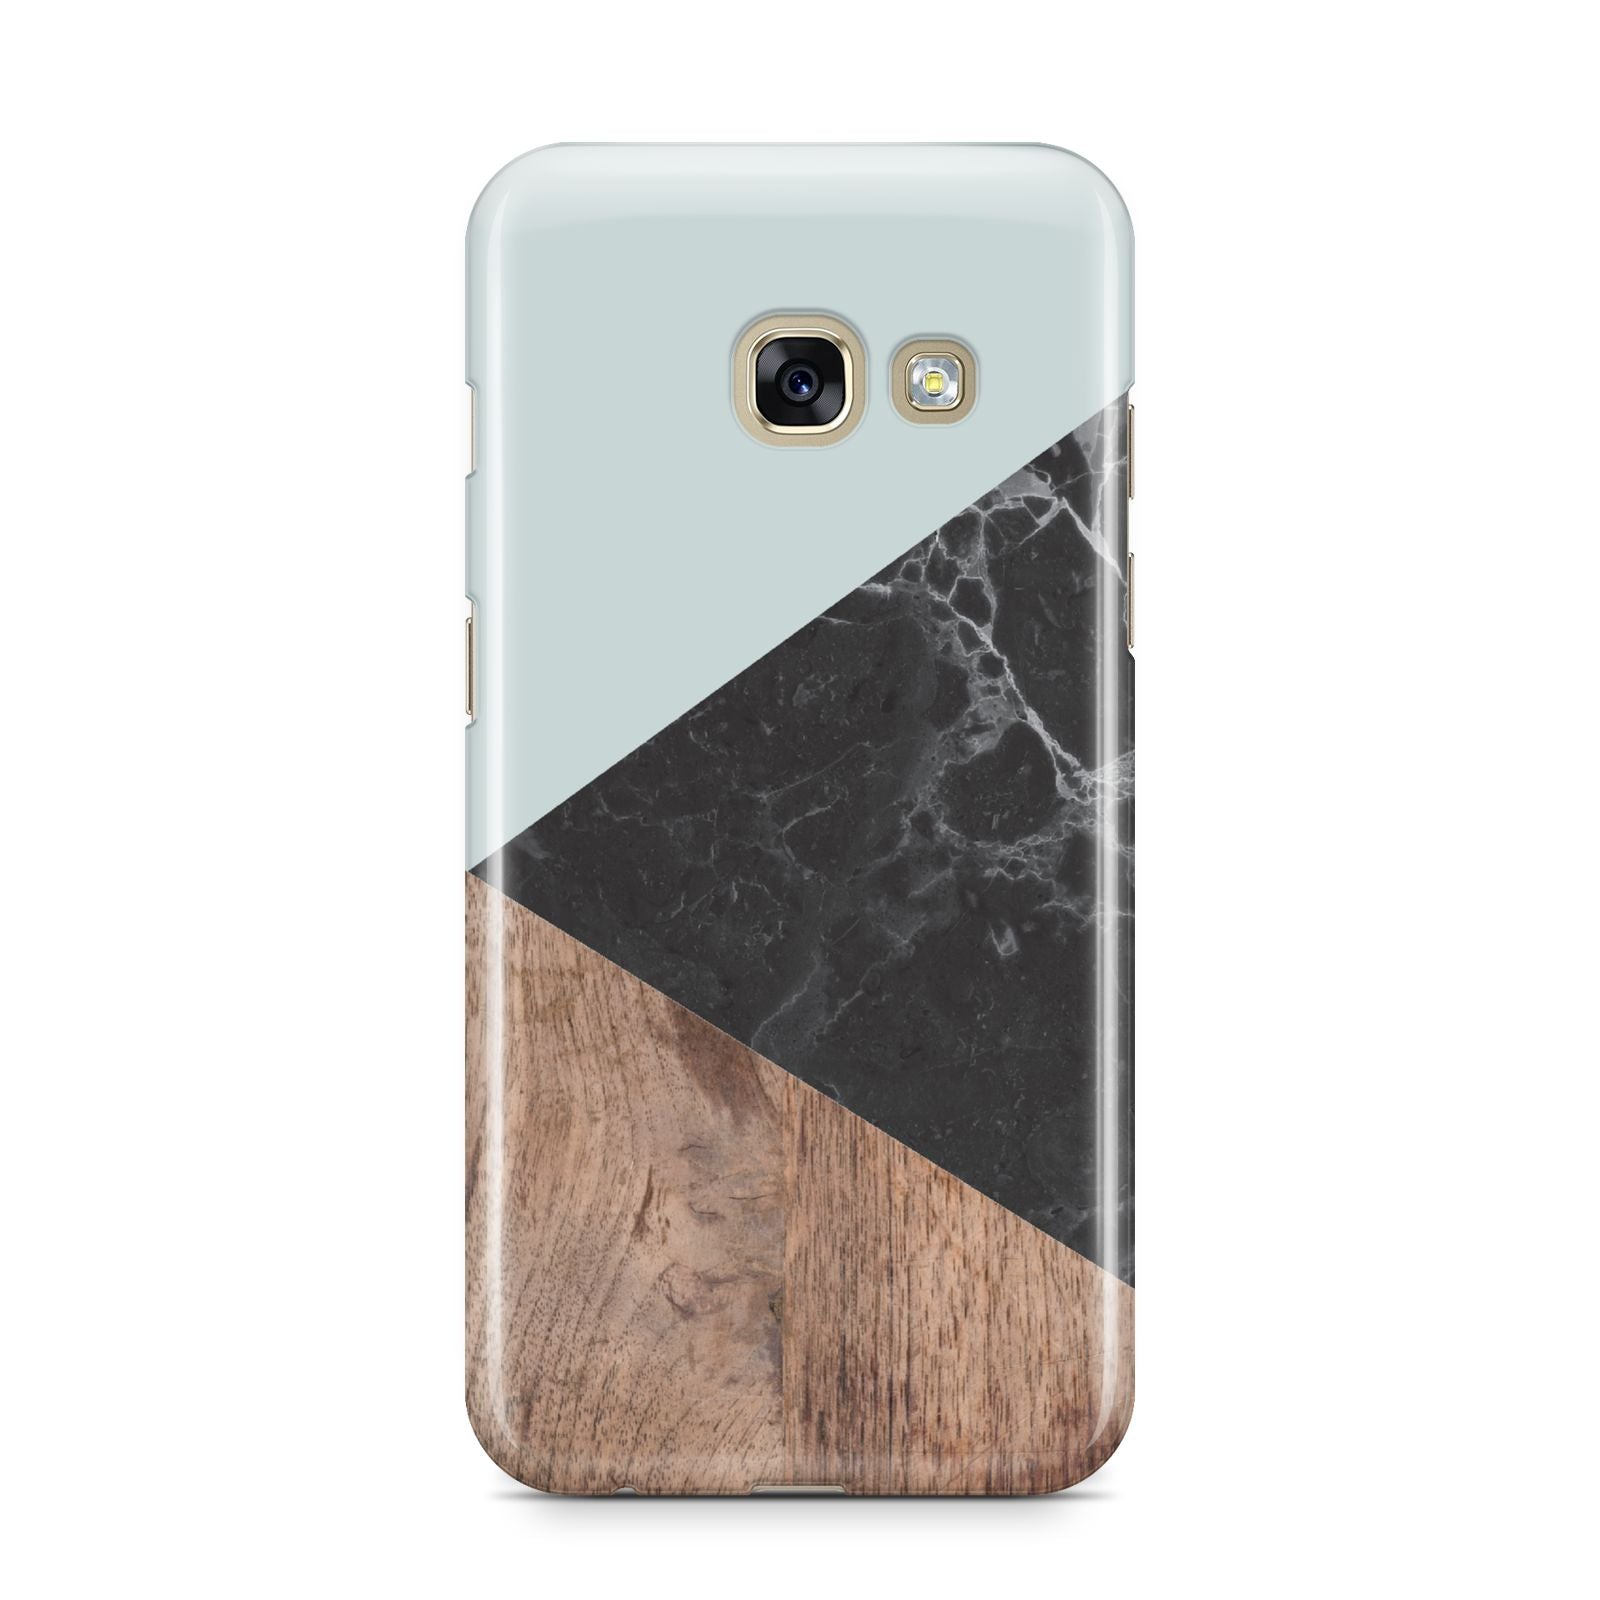 Marble Wood Geometric 2 Samsung Galaxy A3 2017 Case on gold phone